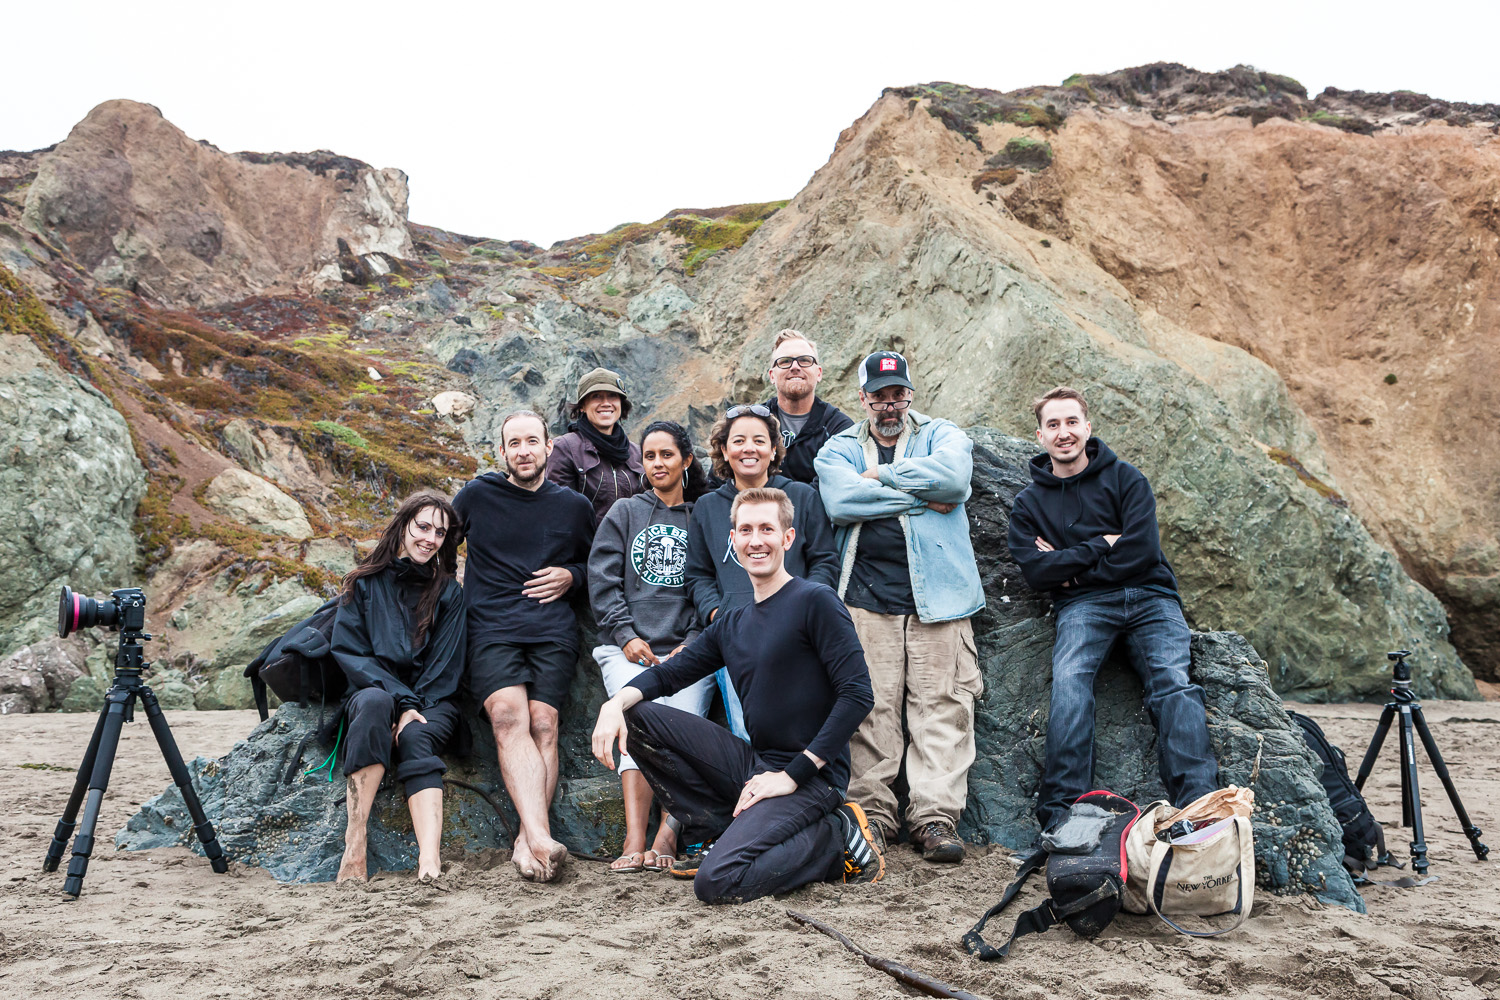 The photo crew at Rodeo Beach